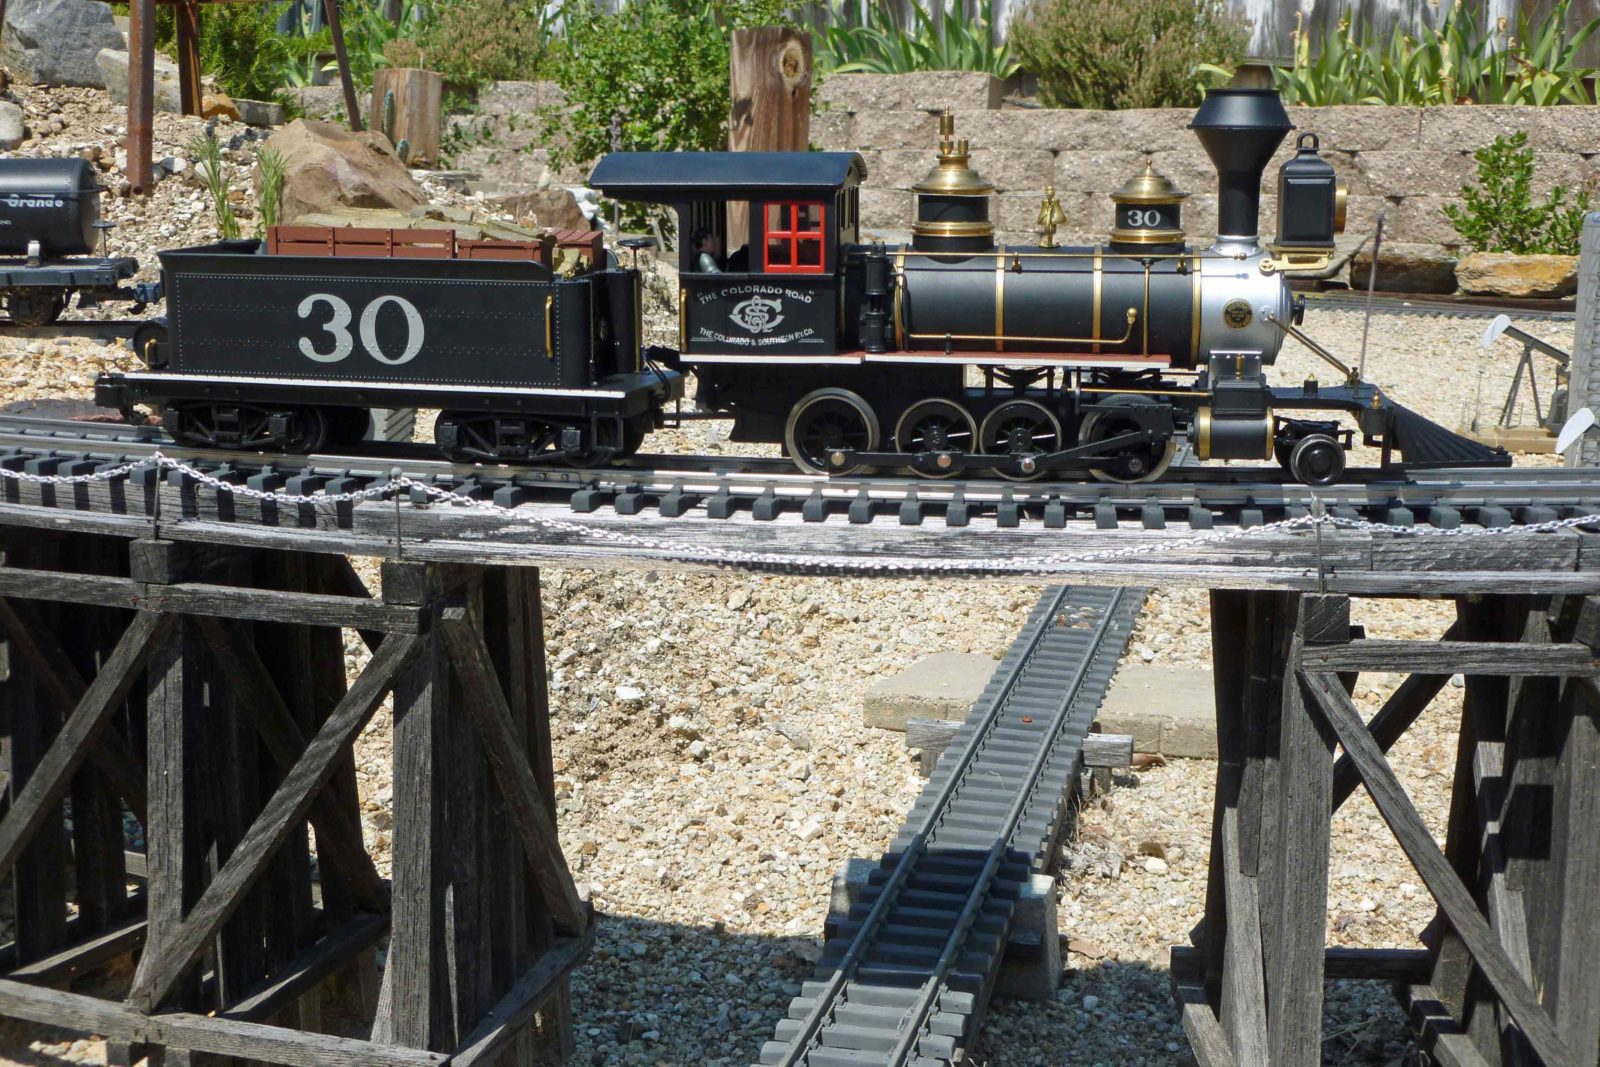 Aristo-Craft C16 crossing trestle on Conejo & Tortuga Railroad